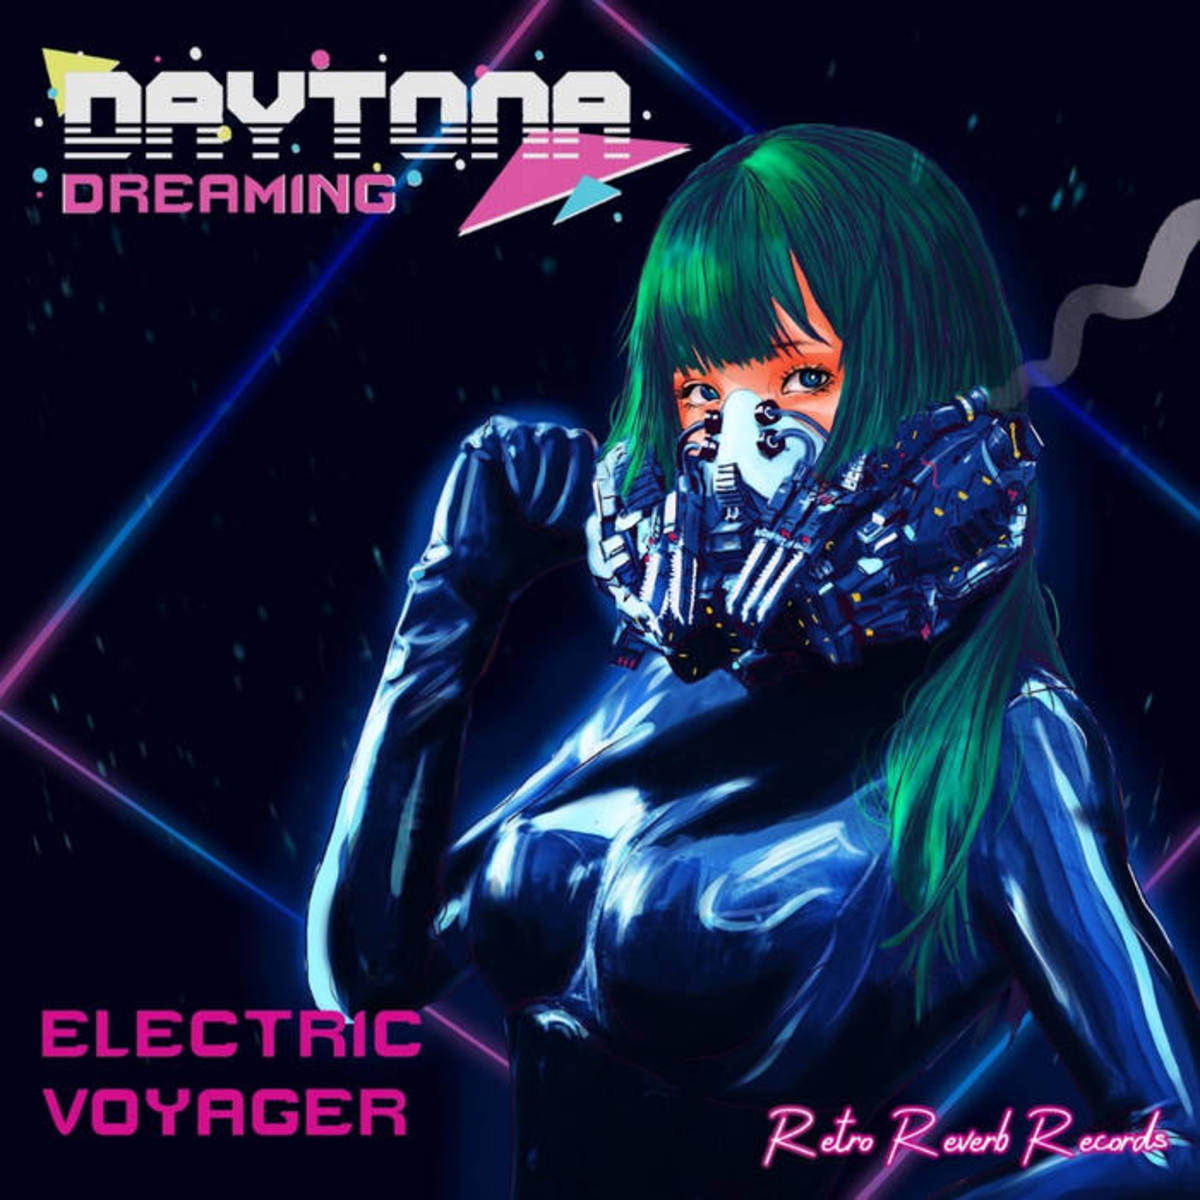 synth-single-review-electric-voyager-by-daytona-dreaming